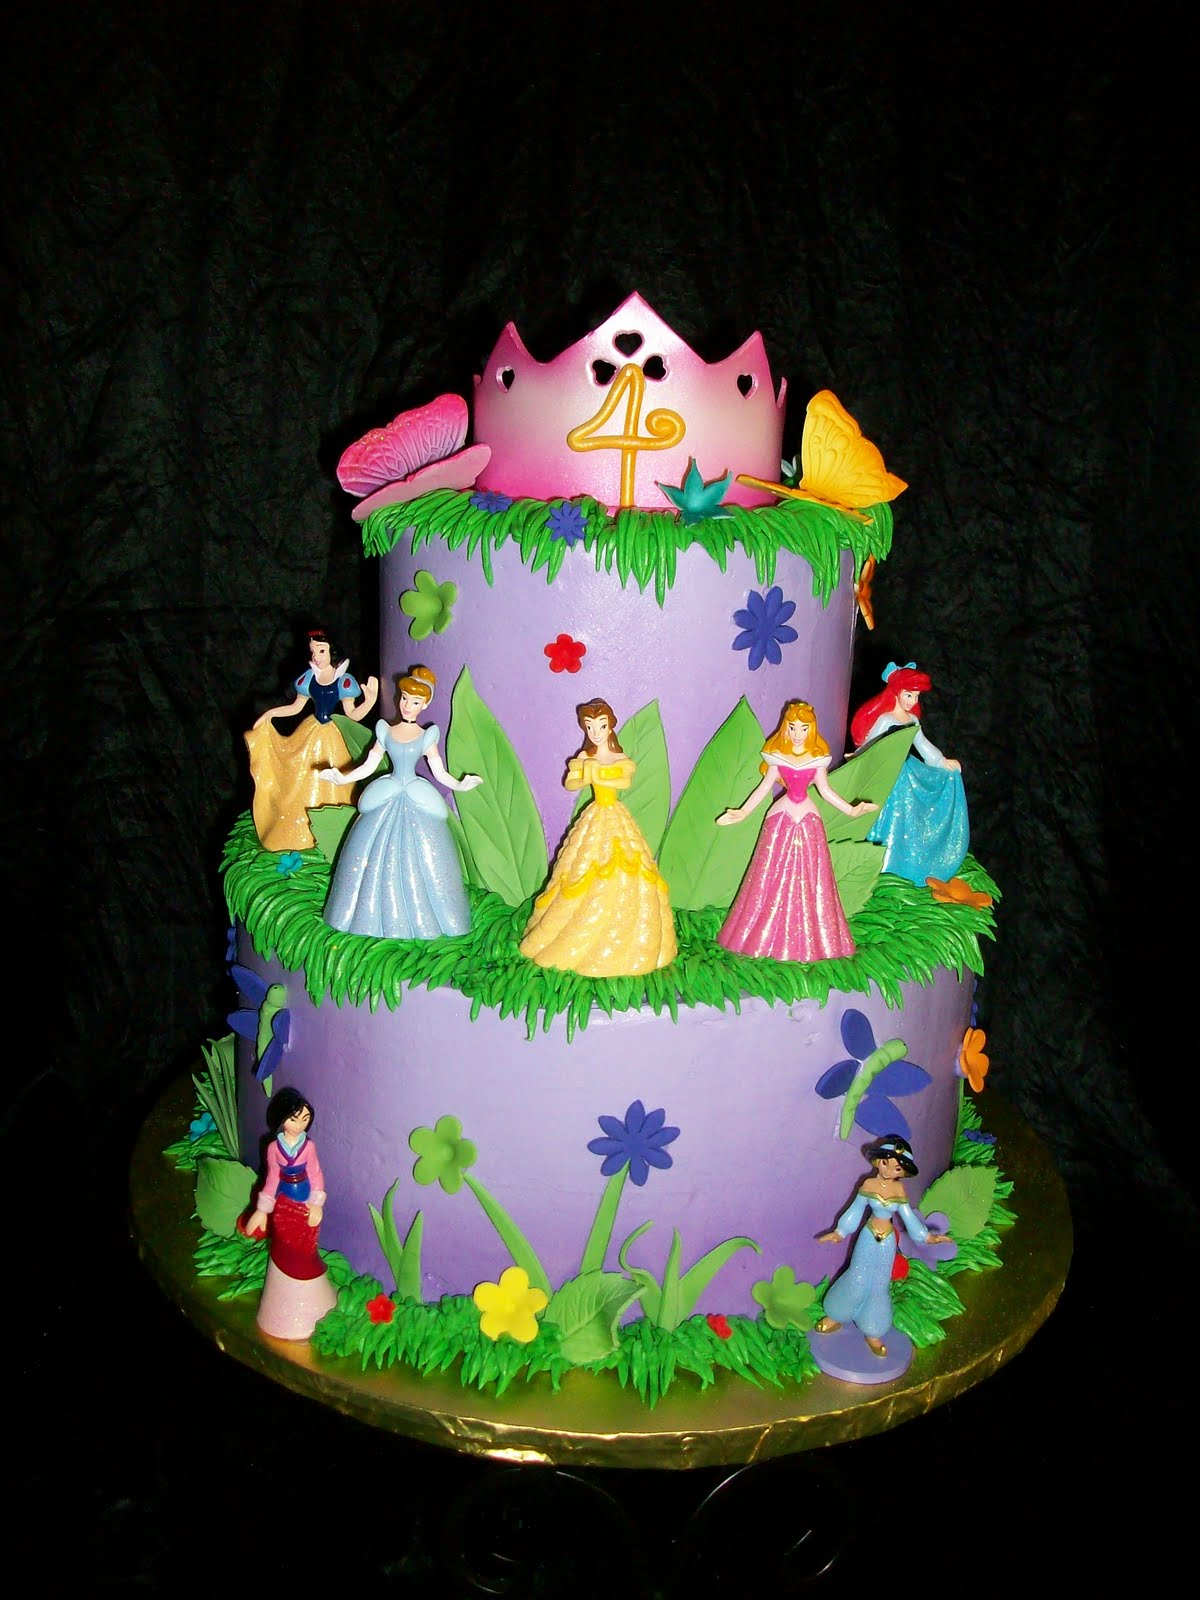 Birthday Cakes Of Princess Image Inspiration of Cake and Birthday